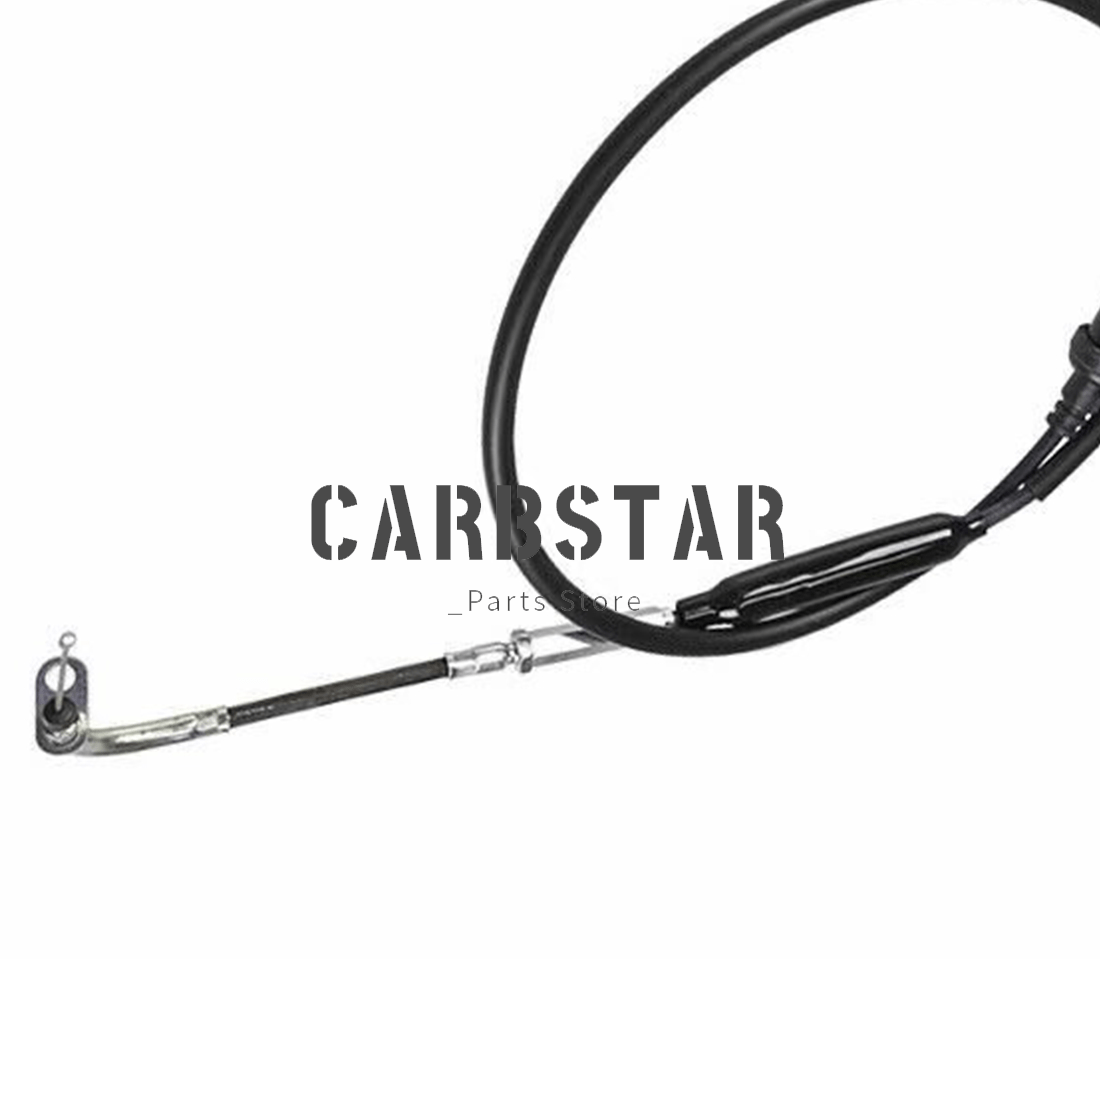 Choke Cable Replace 0487-033 For Arctic Cat 2004-2006 650